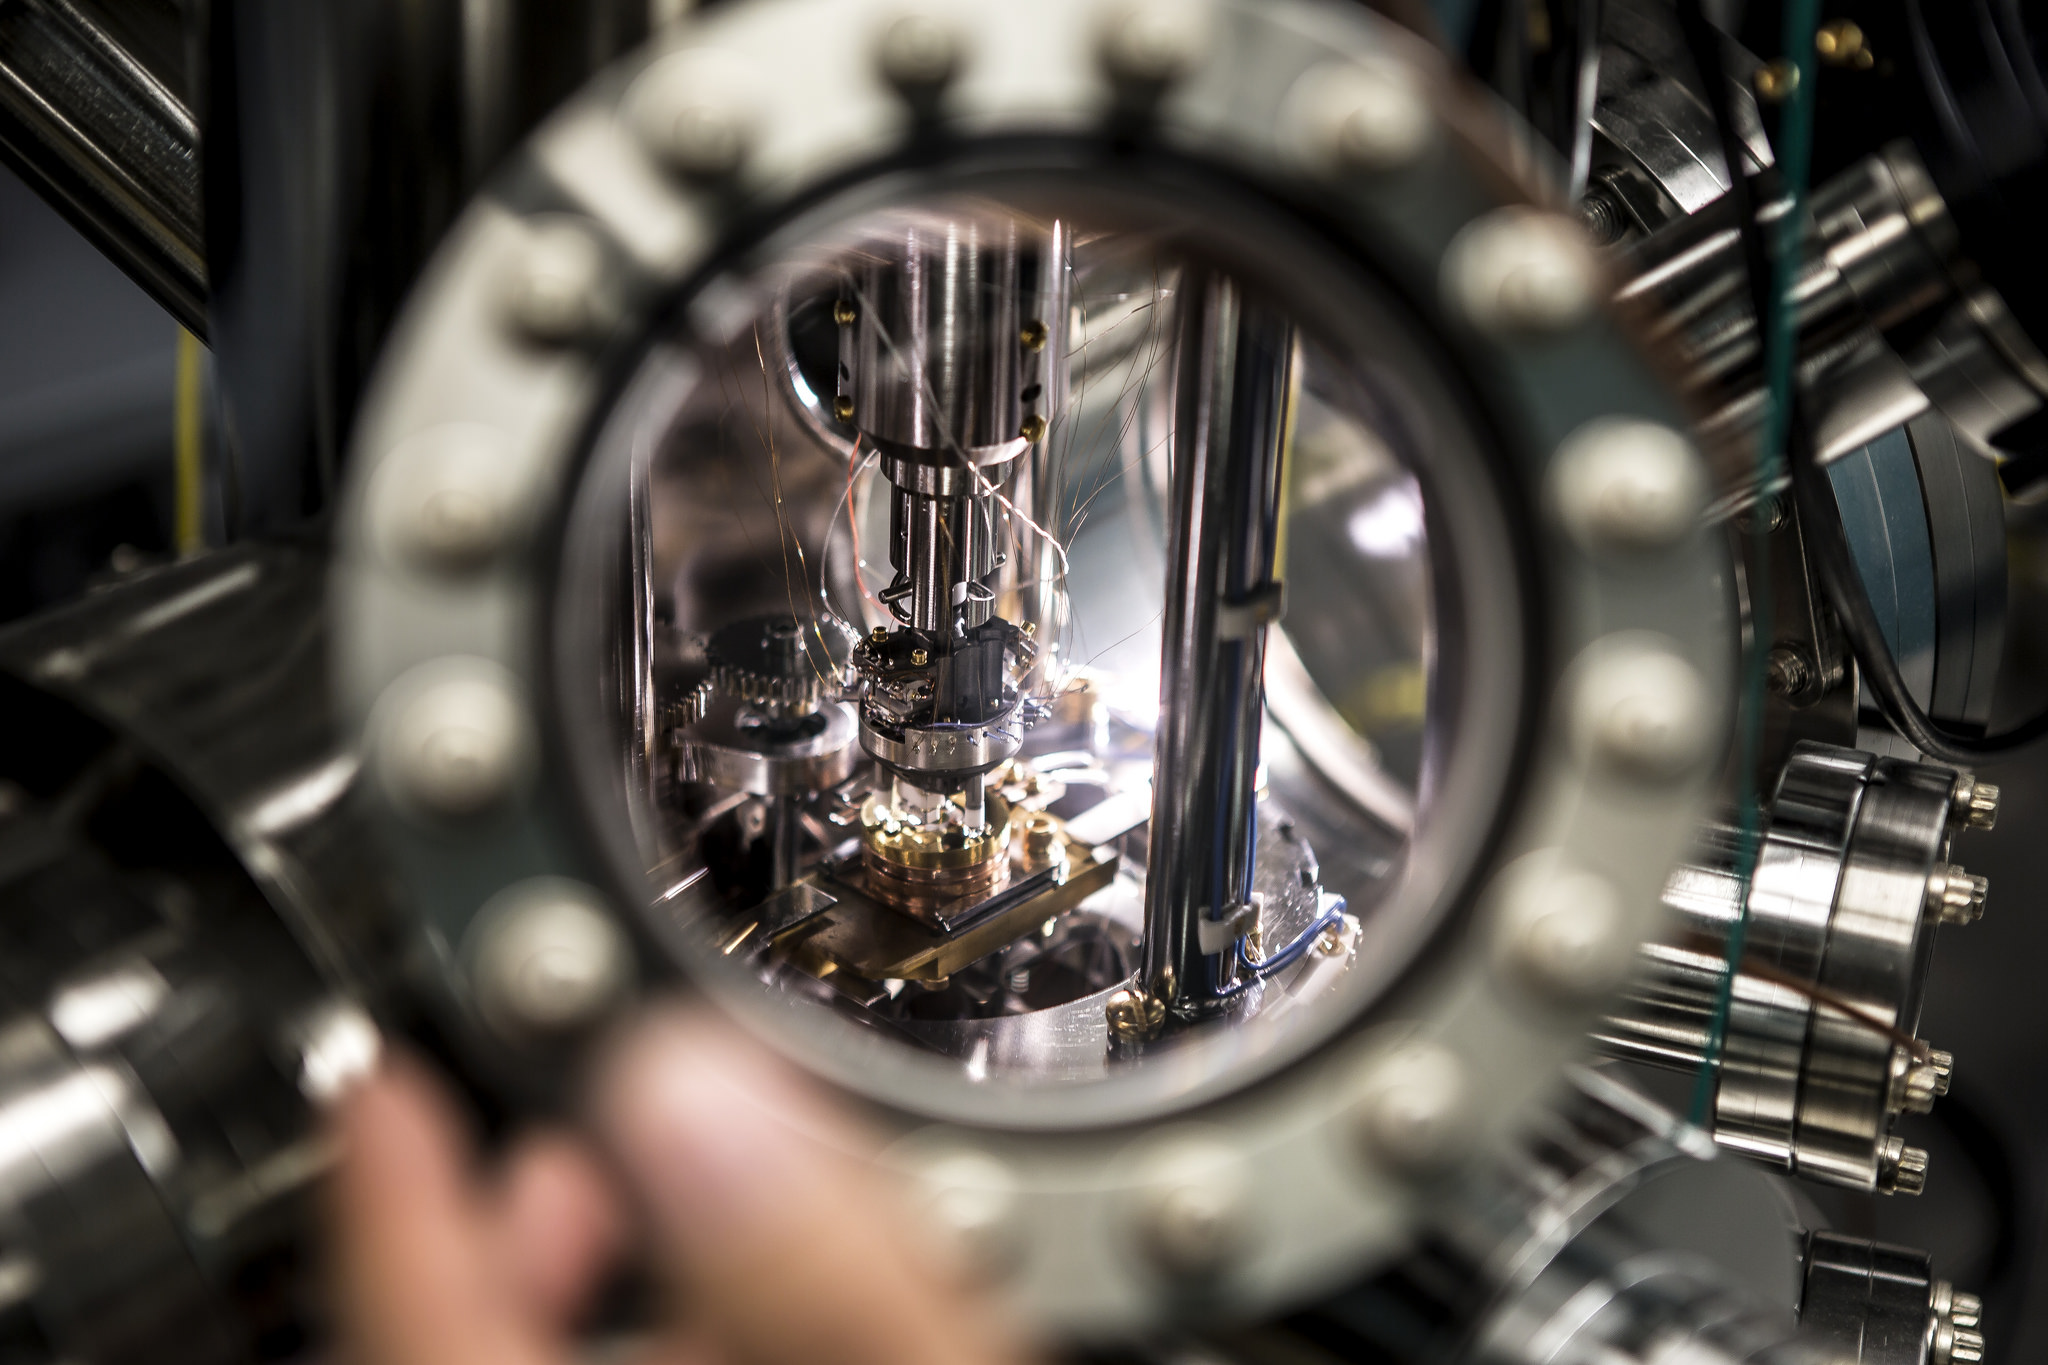 The view inside the Ultra High Vacuum Scanning Thermal Microscope, which was used to measure temperature fluxes at the nanoscale. Image credit: Joseph Xu